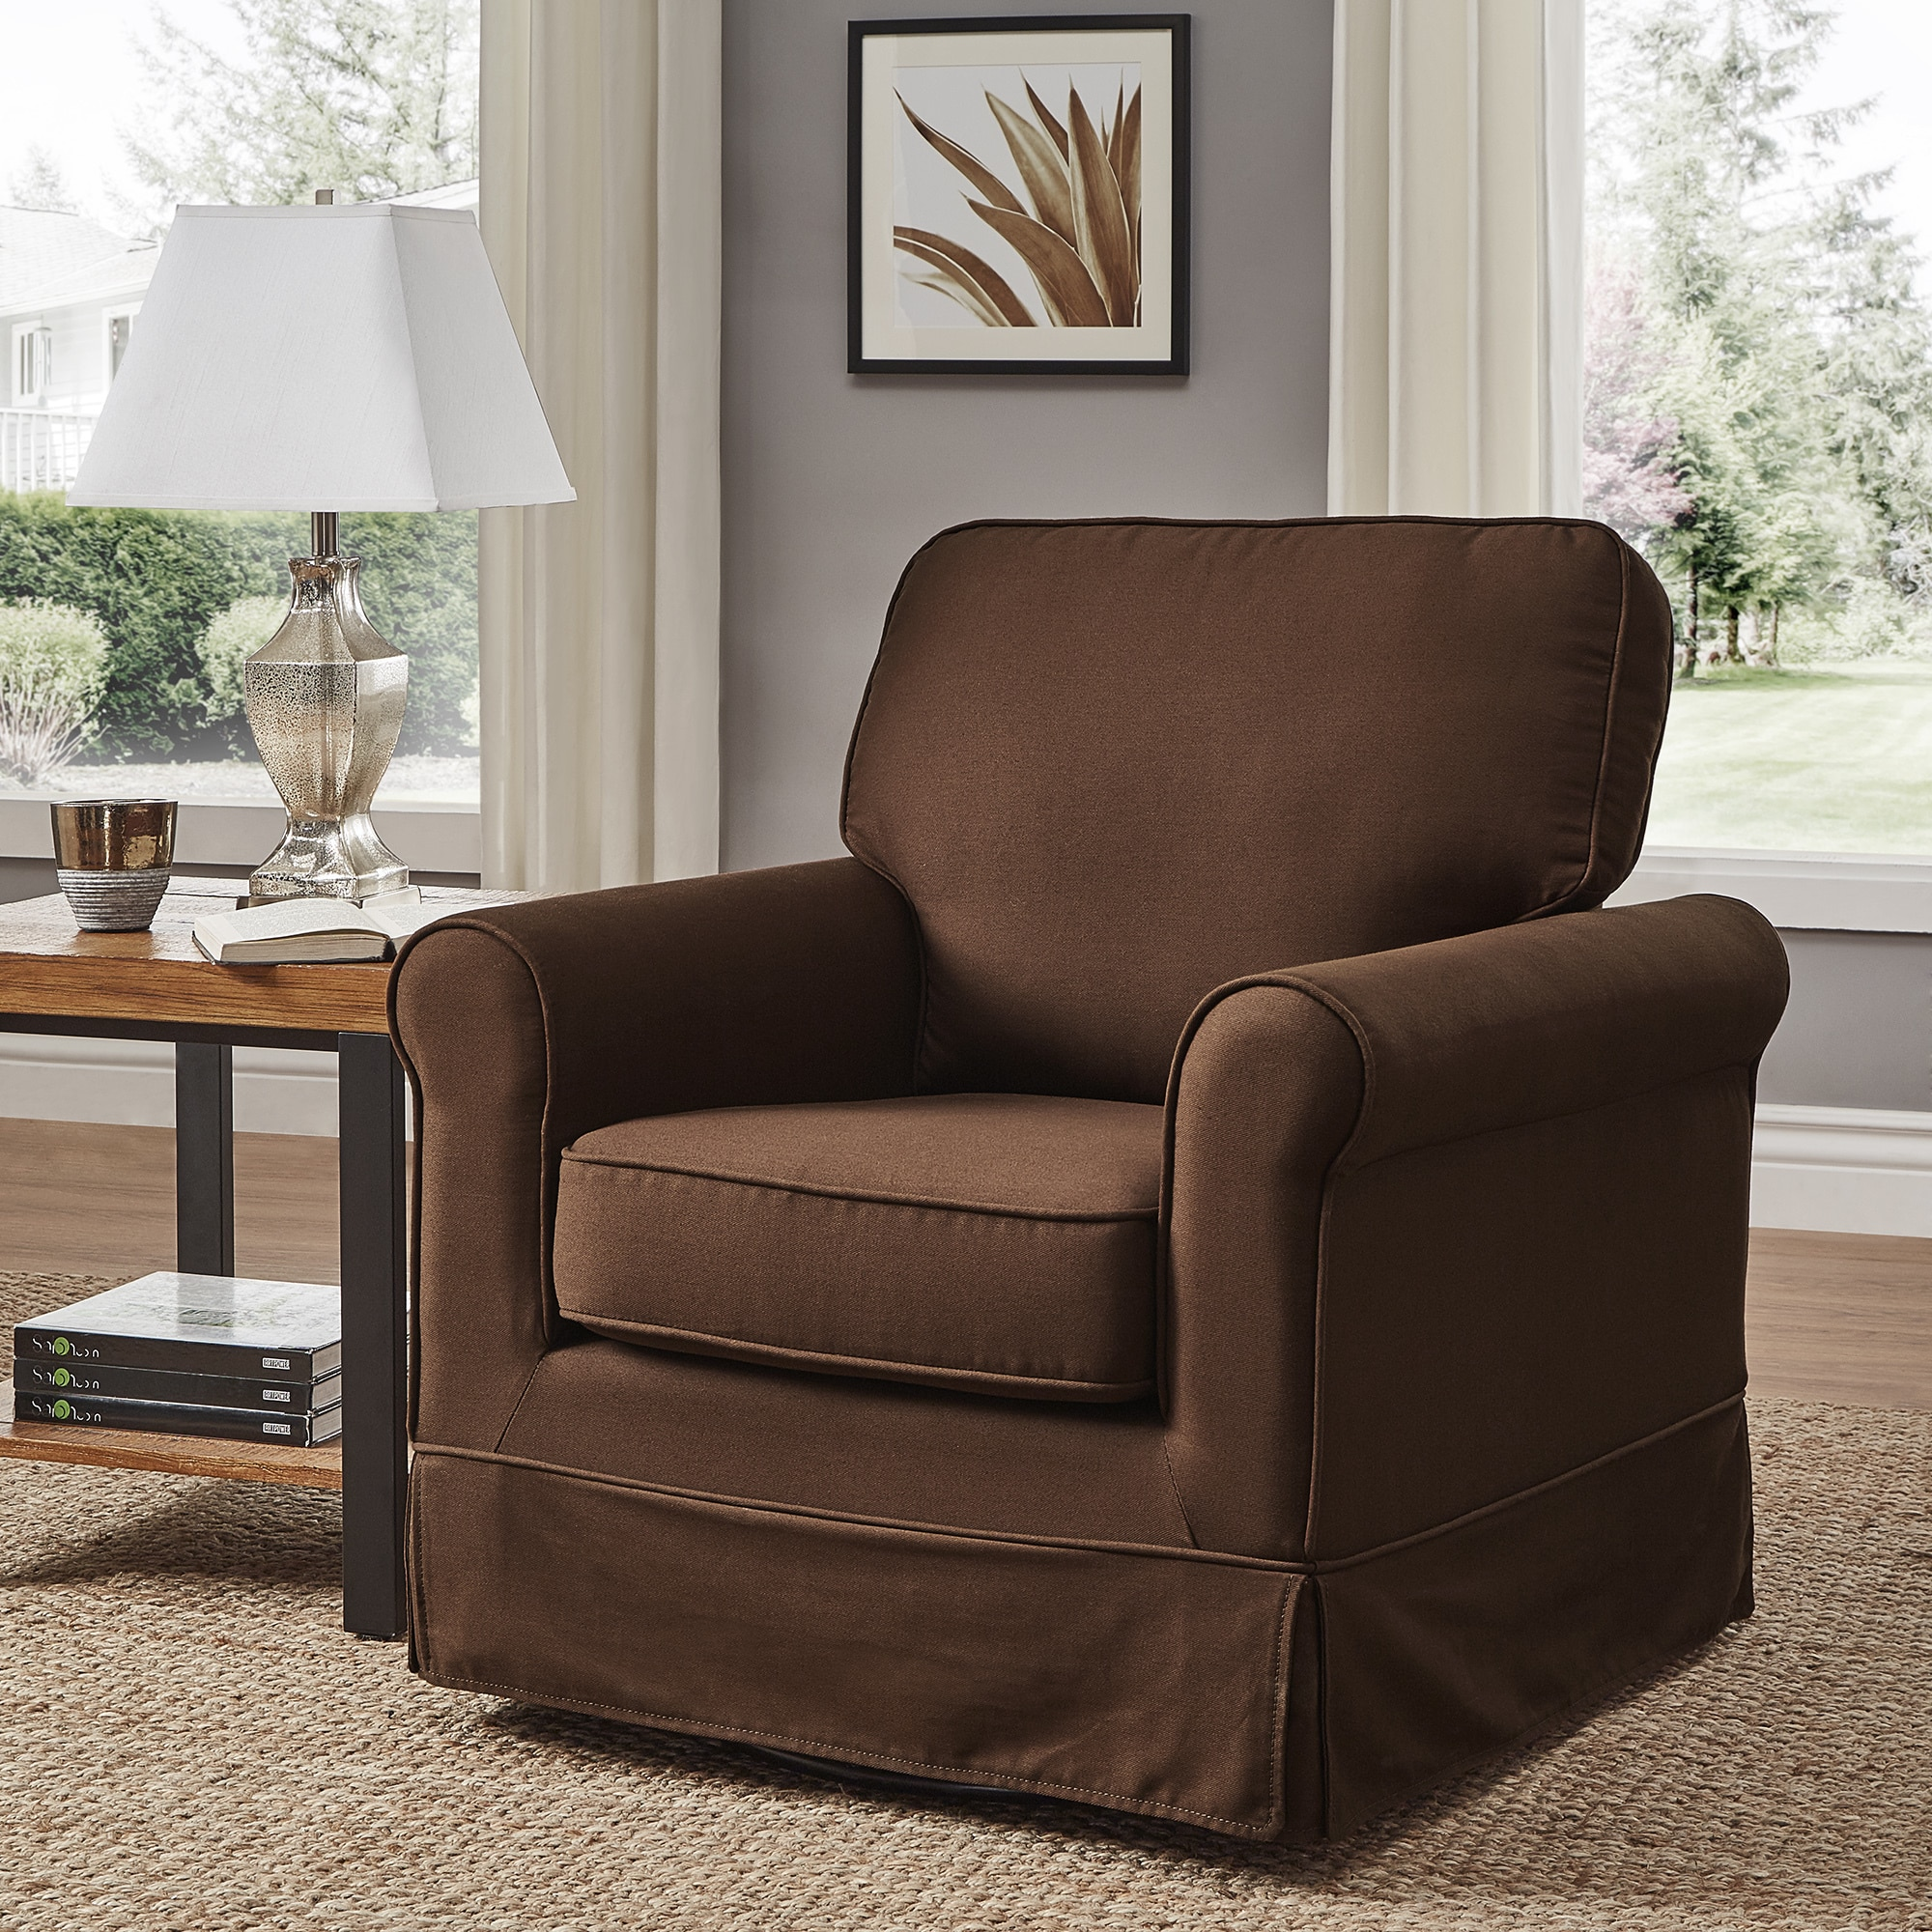 Accent Chairs Swivel Living Room Chairs For Less Overstockcom